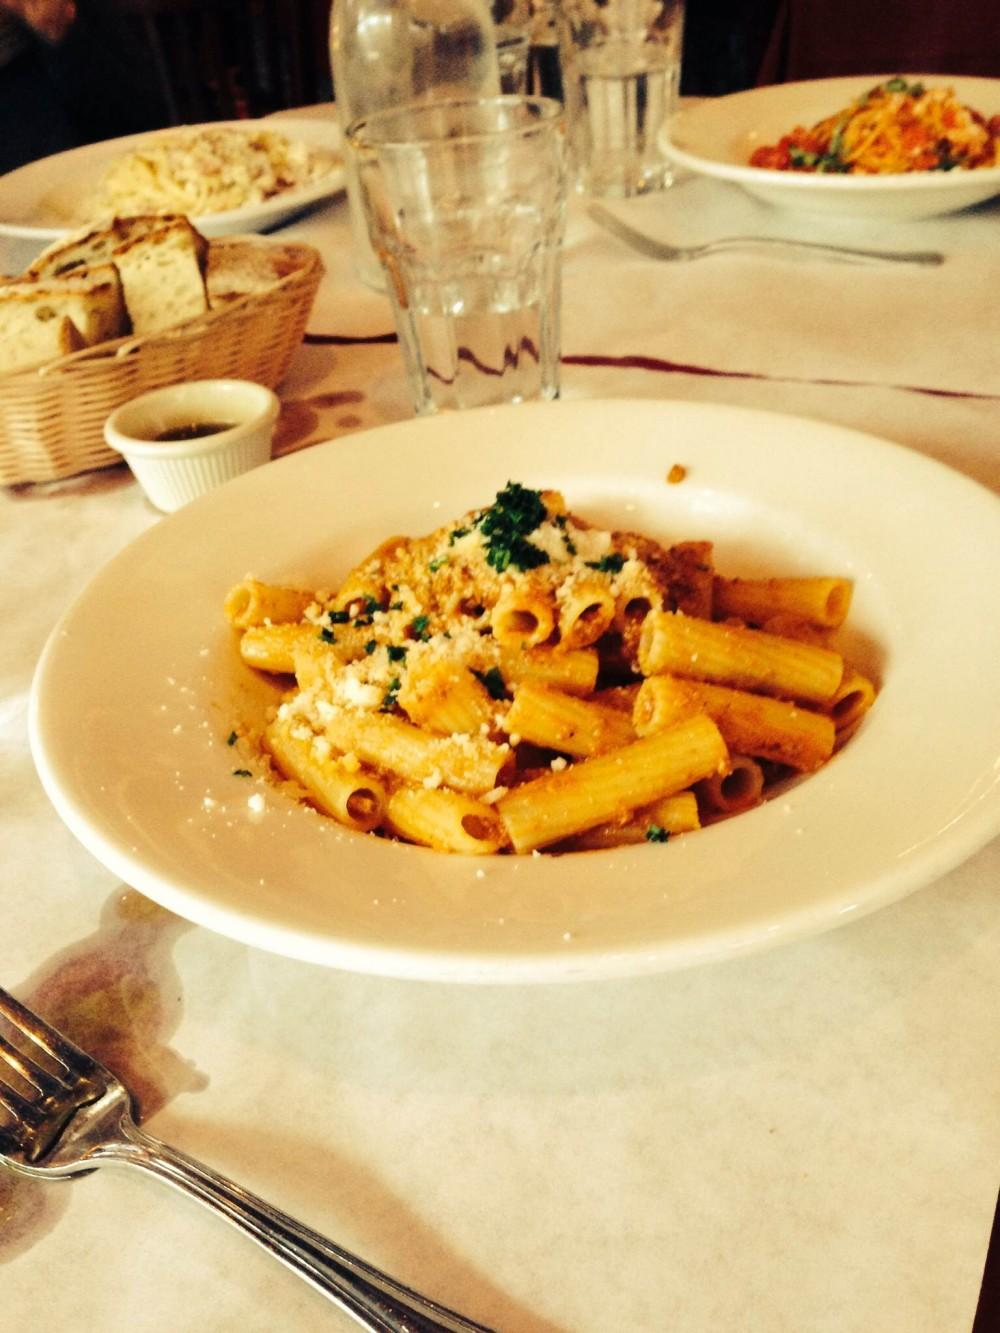 Italian restaurant delivers delectable dishes but mediocre service